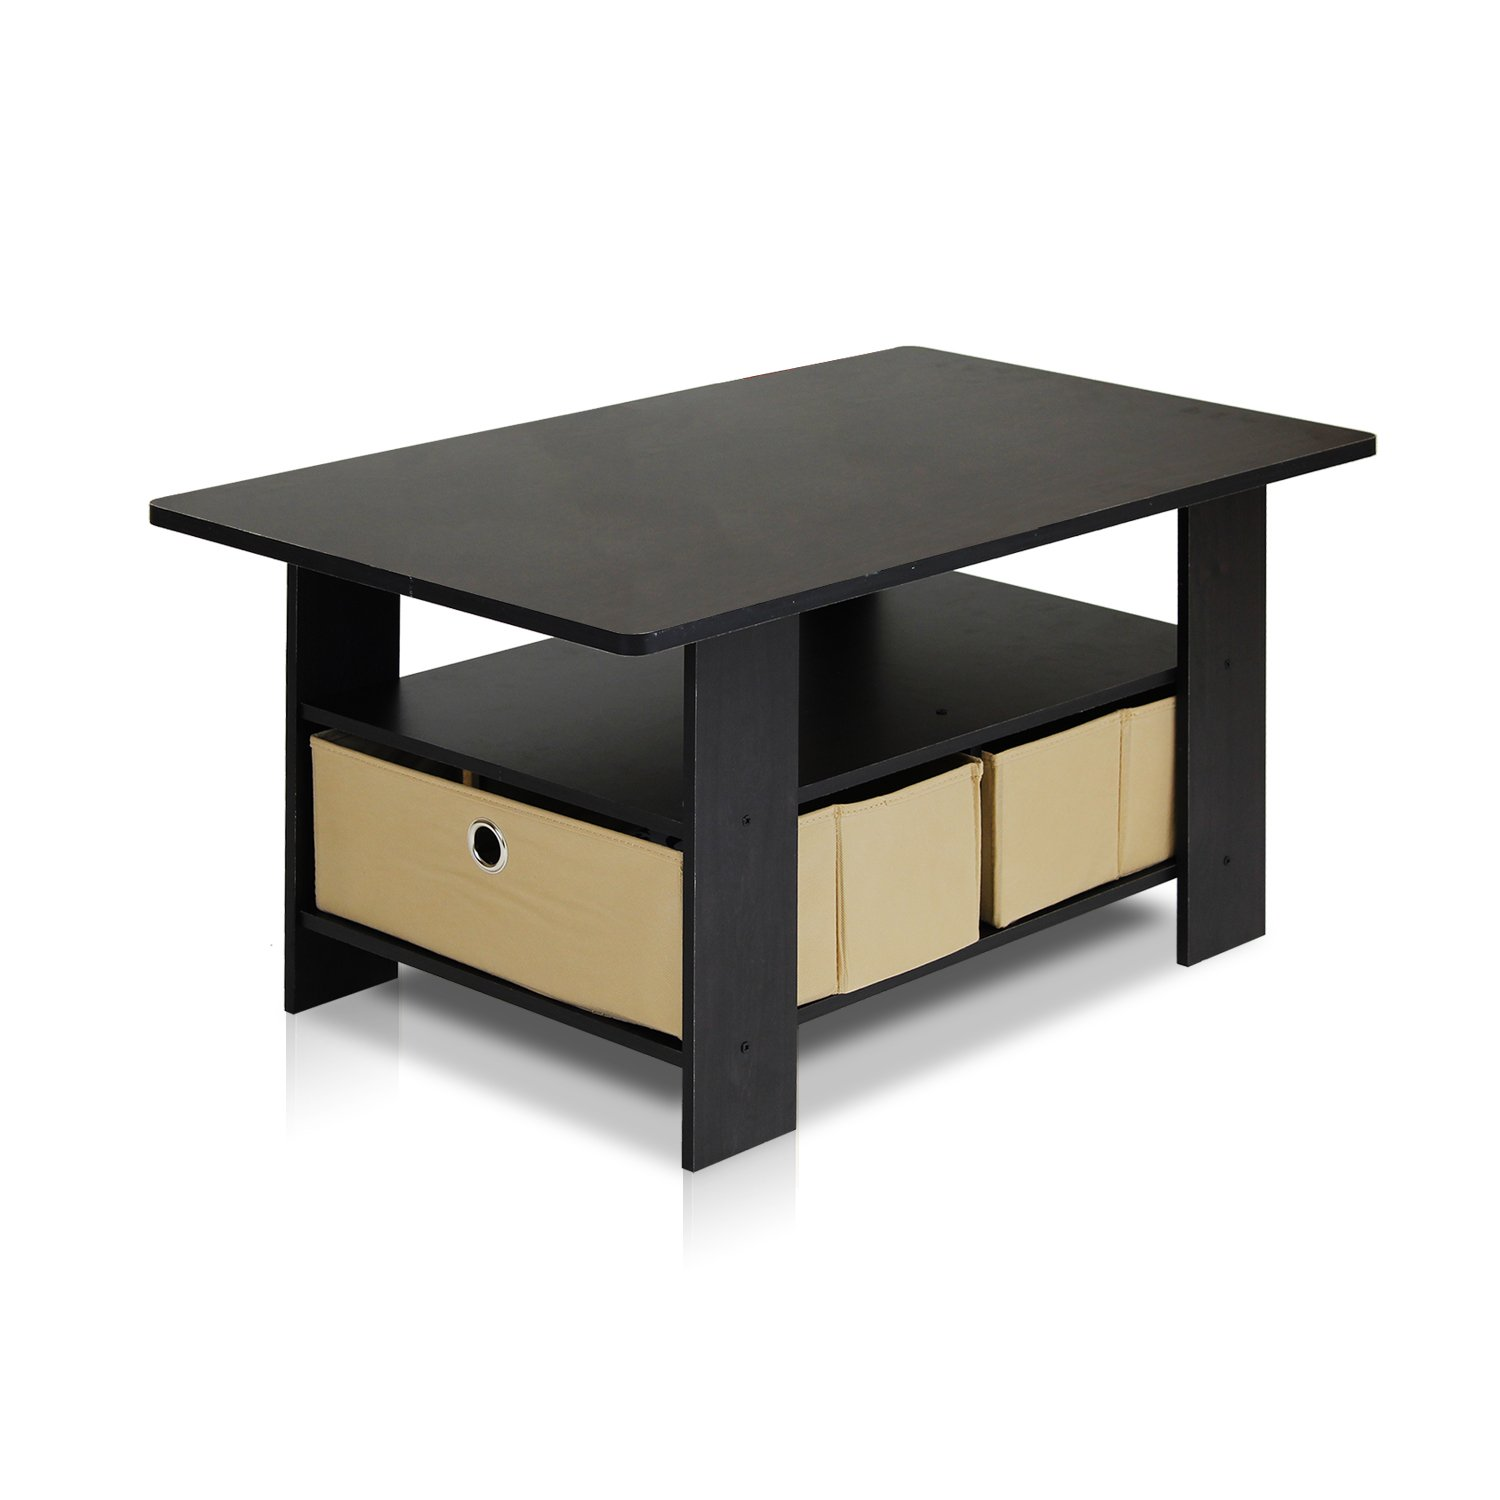 Small Coffee Table Living Room Furniture Dorm Desk Home Storage Shelf Organiz